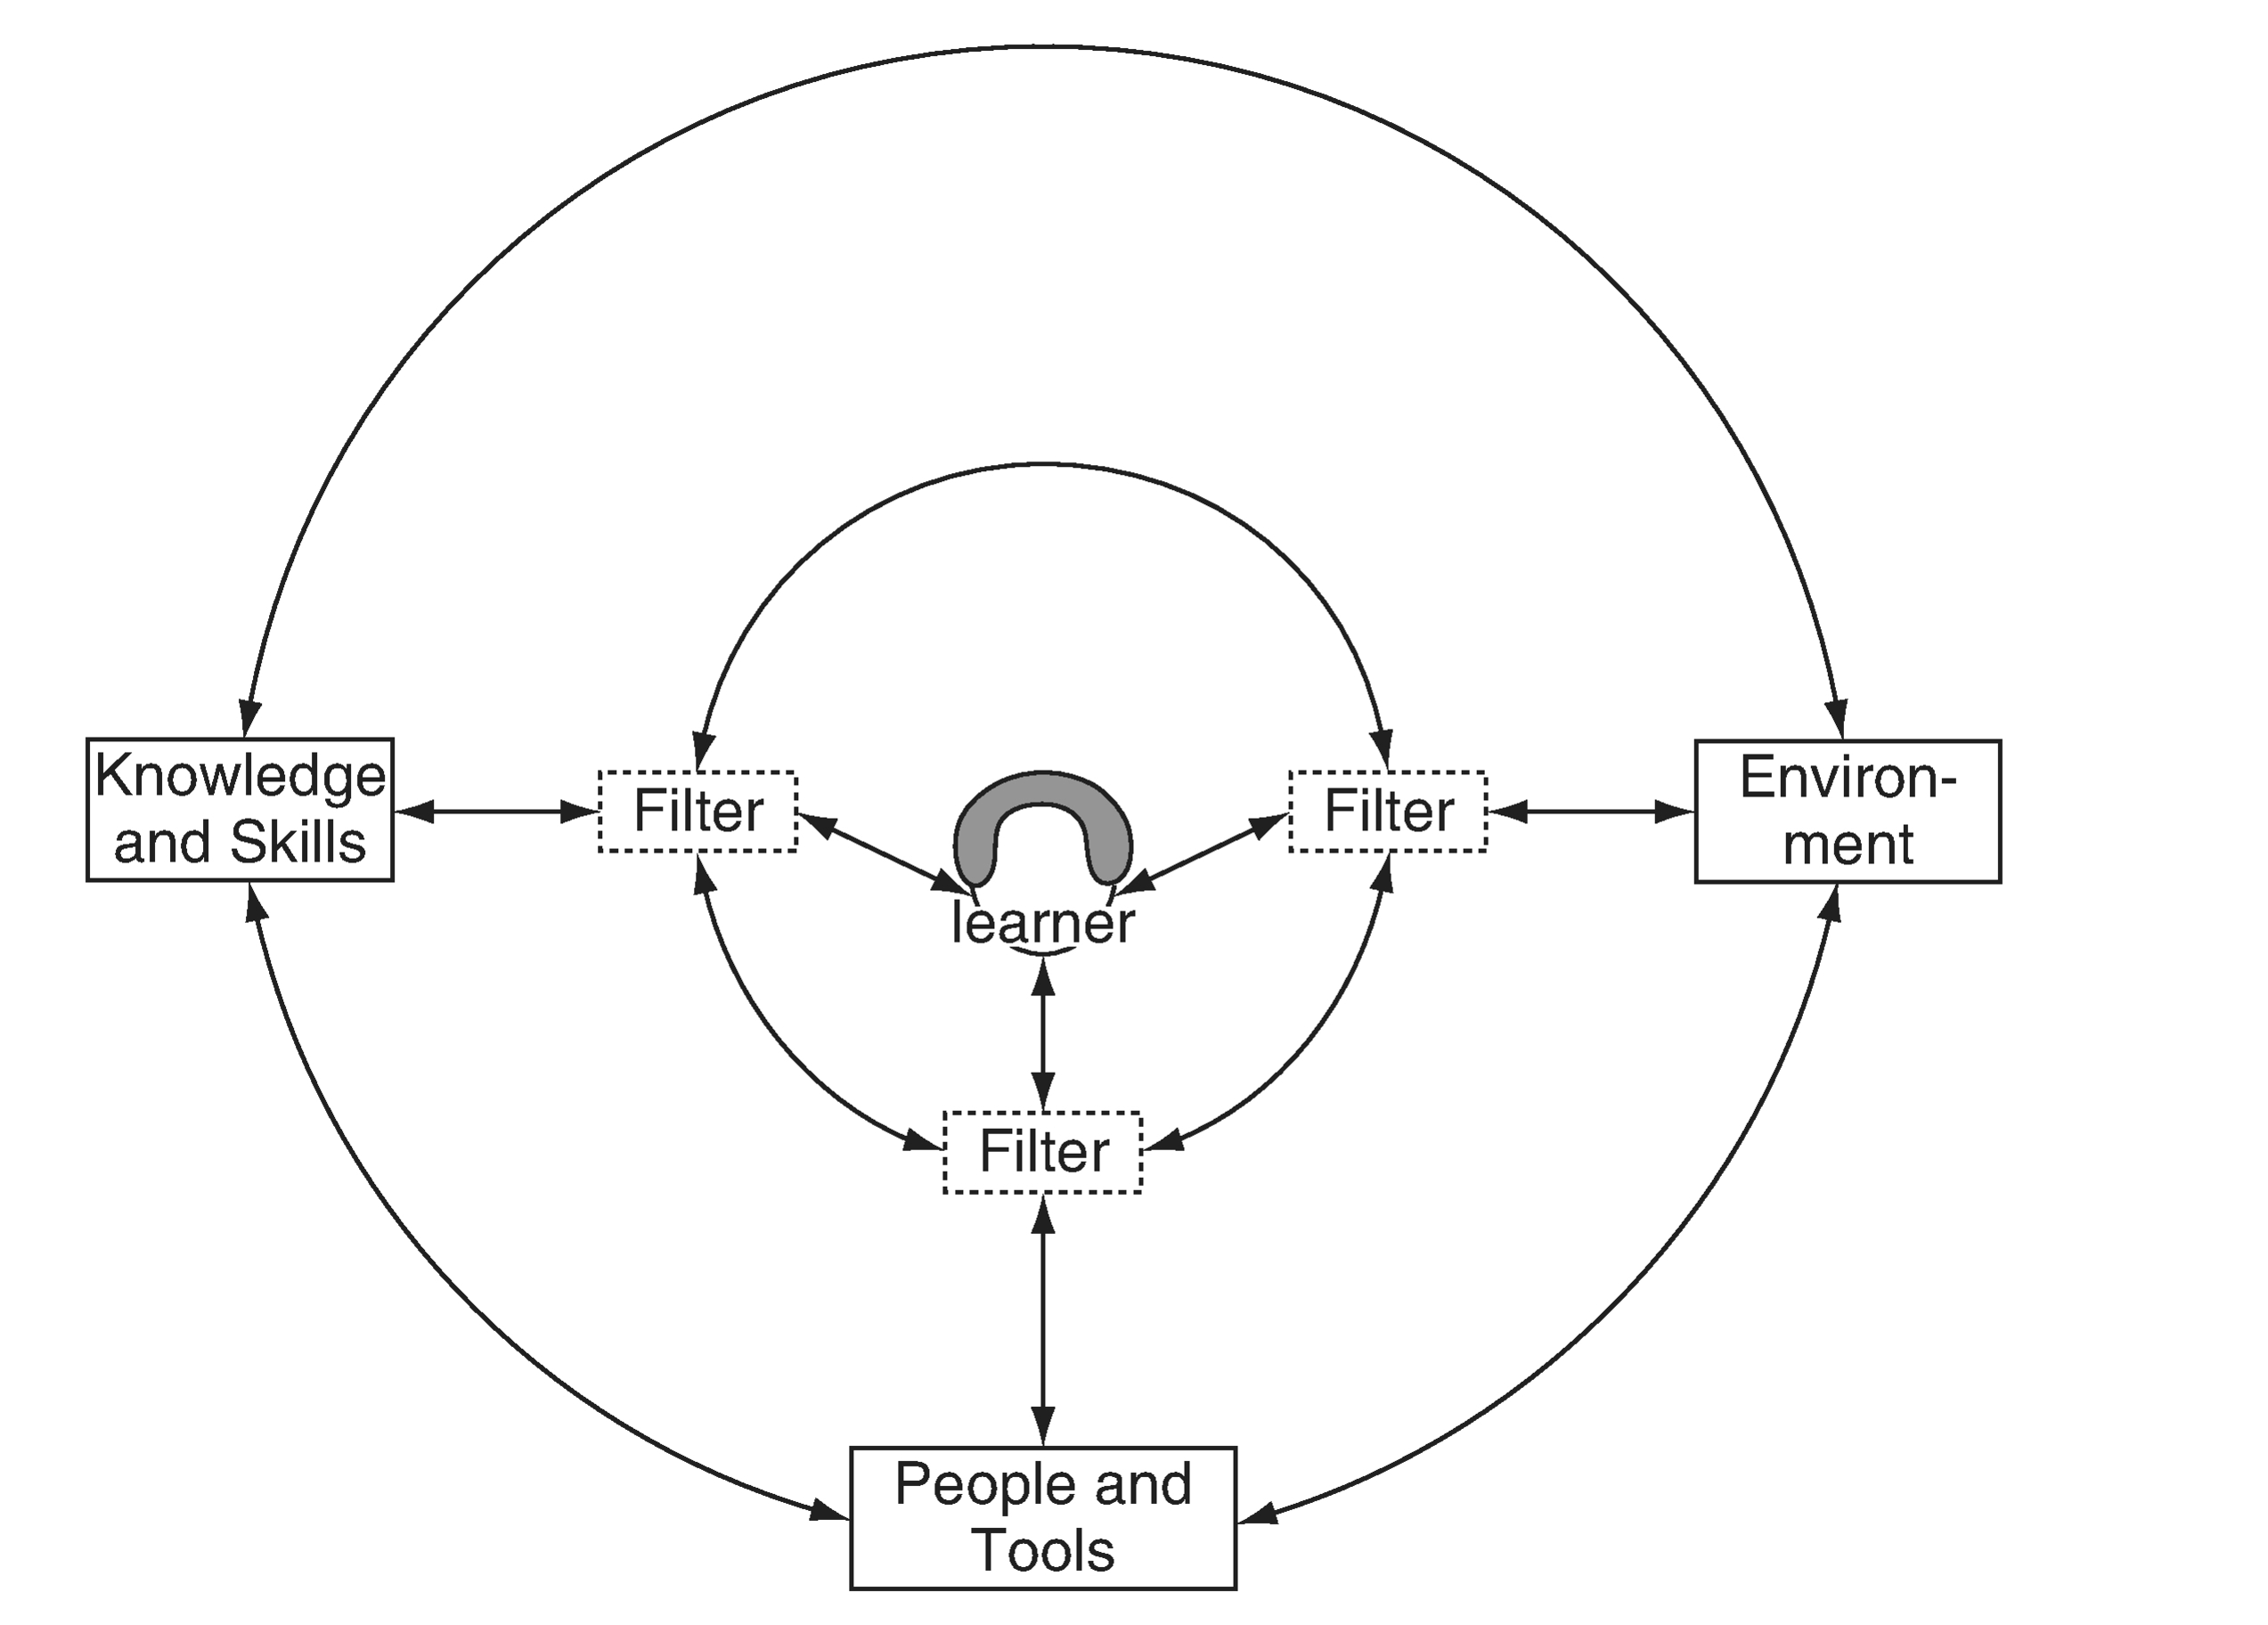 The Ecology of Resources Model (Luckin, 2010).